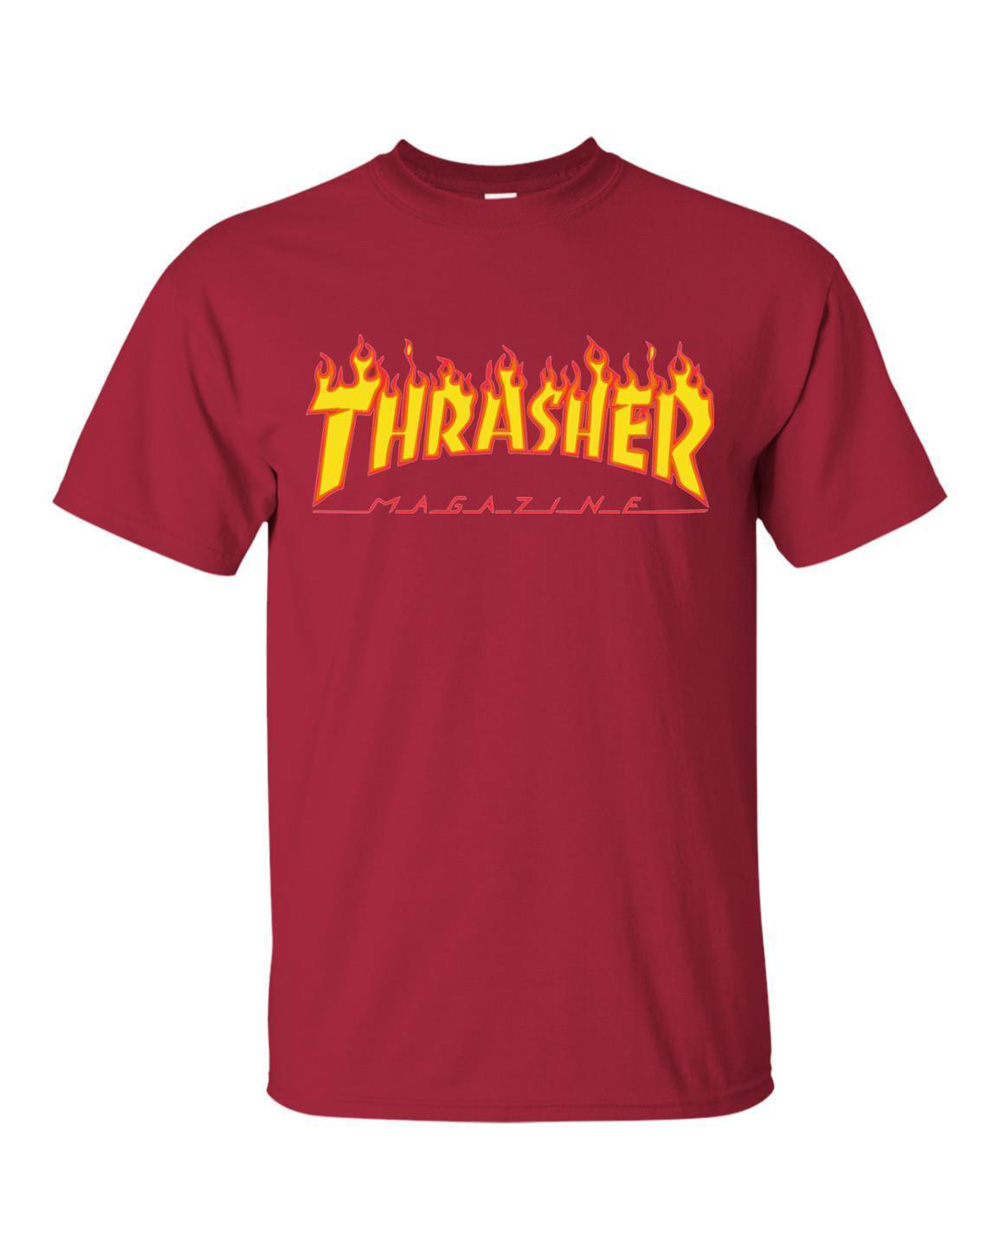 Thrasher Men's T-Shirt Flame Cardinal